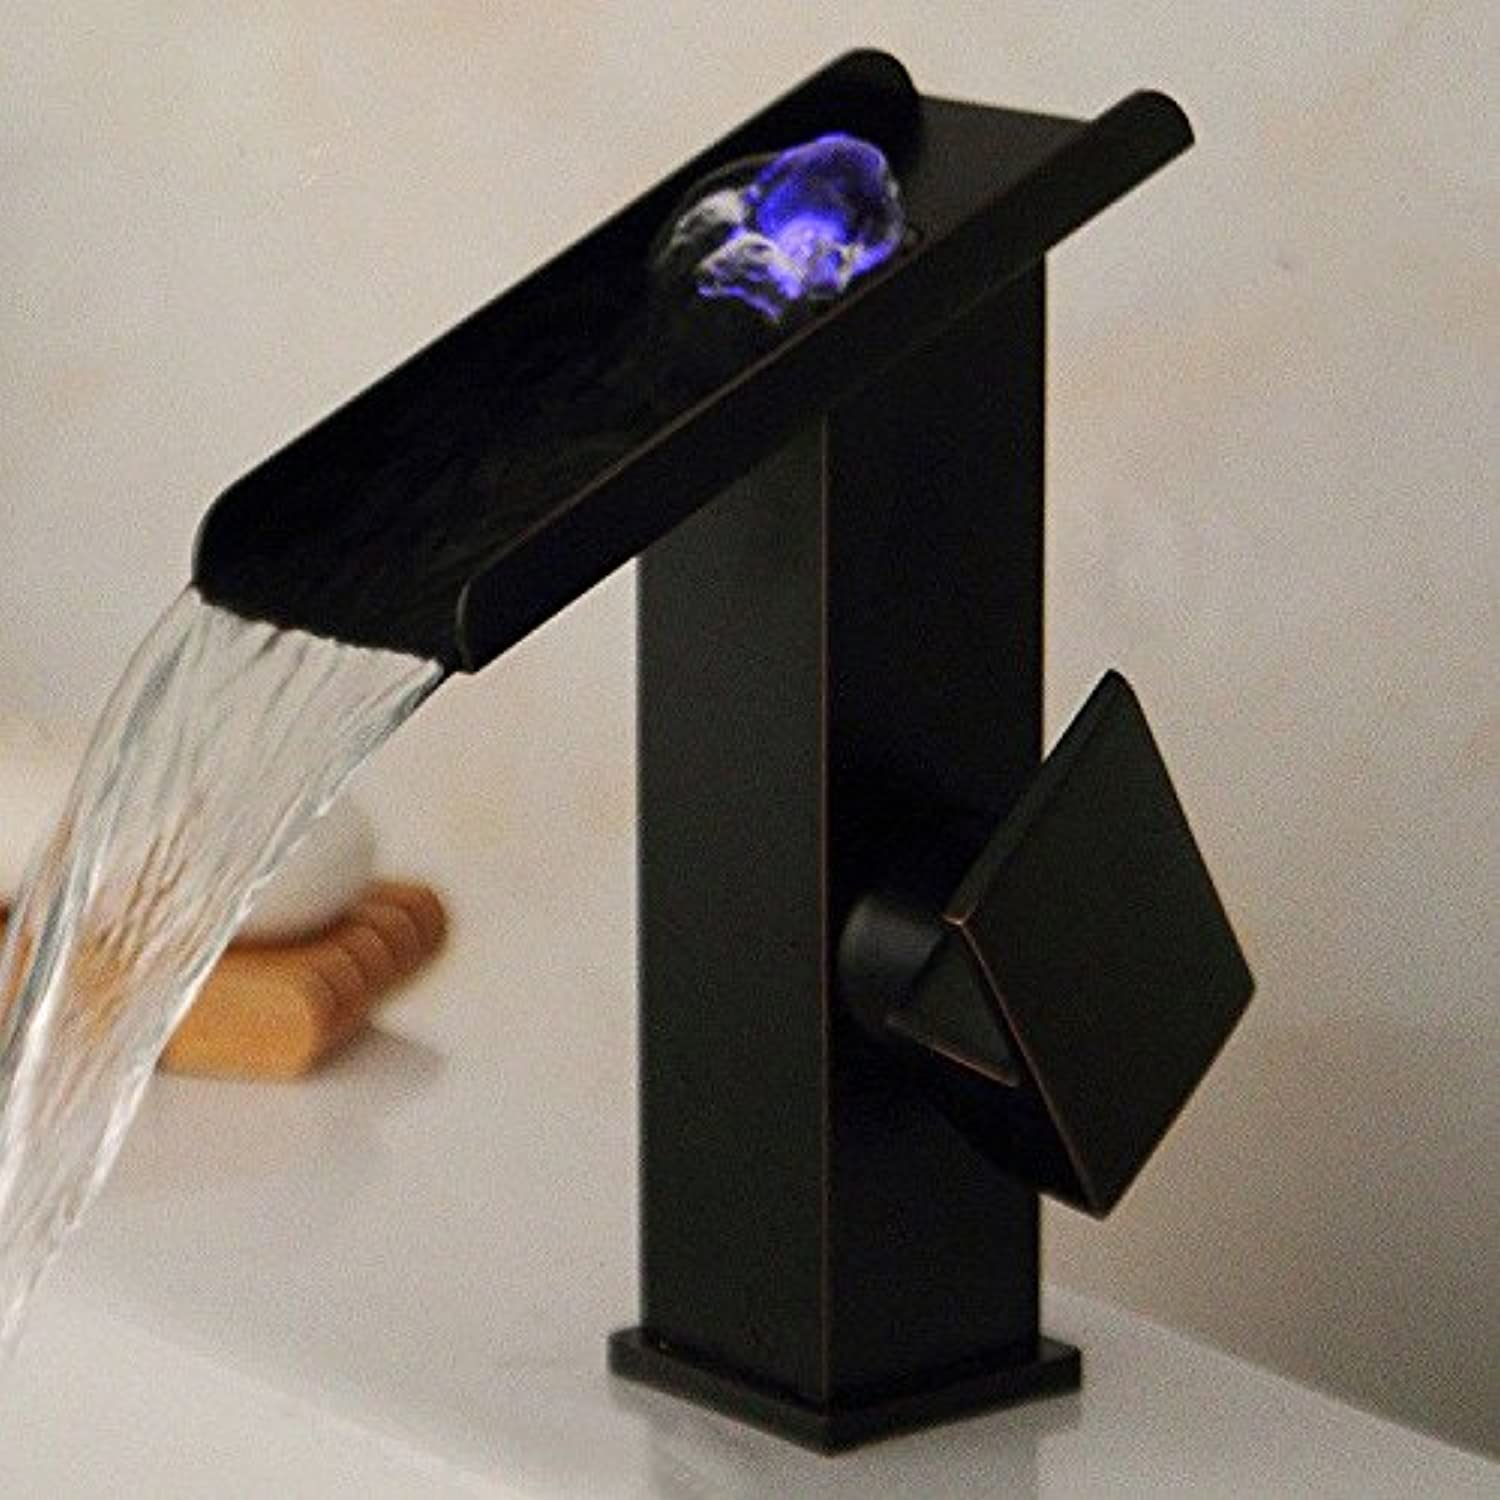 AQMMi Basin Sink Mixer Tap for Lavatory Brass Black Retro Wide Mouth Waterfall Hot and Cold Water Bathroom Vanity Sink Faucet